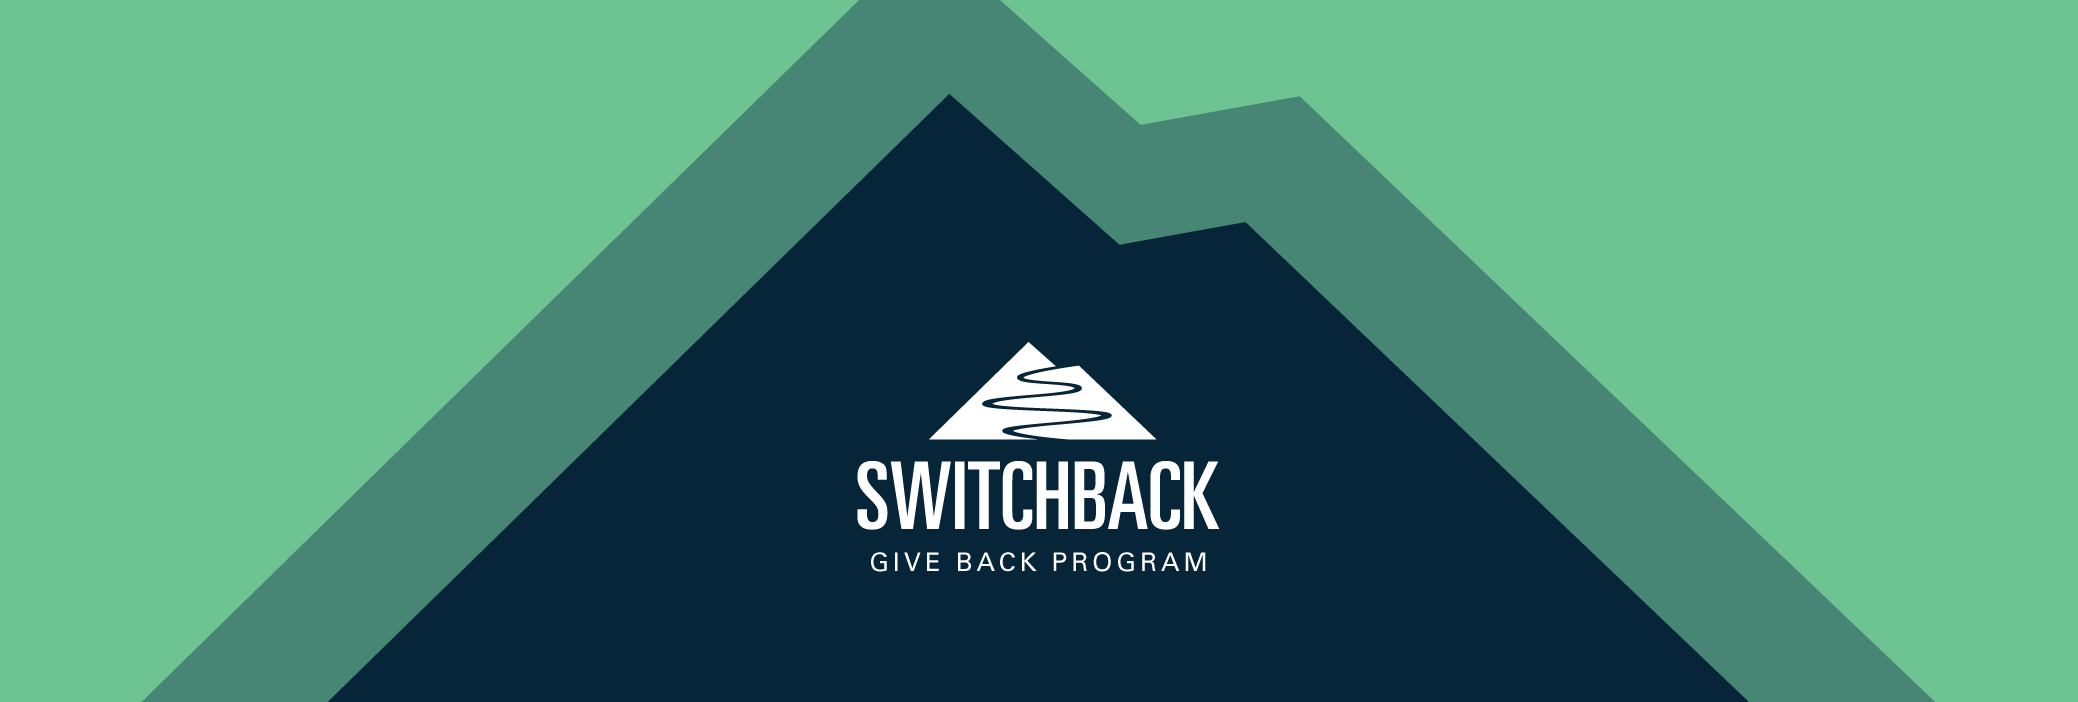 Switchback - Singlespeed brewing give back program